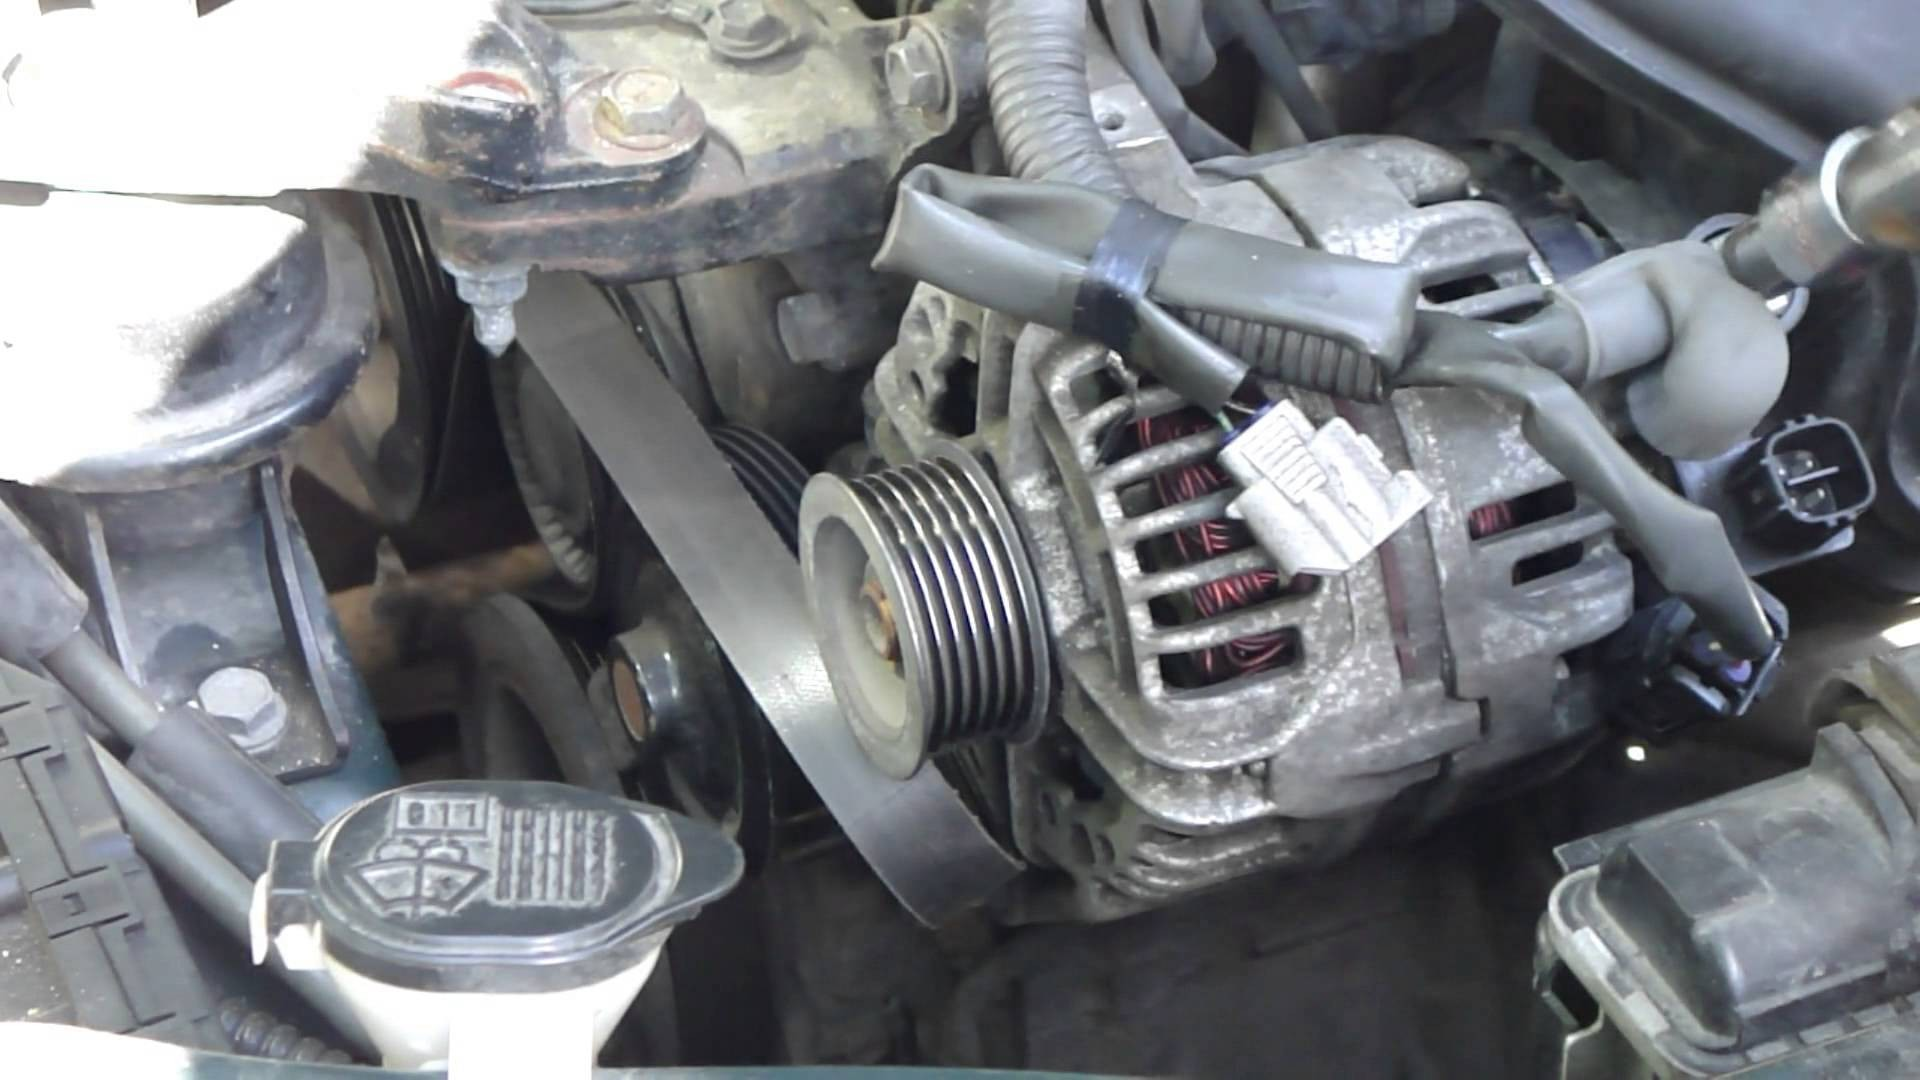 2002 toyota Corolla Engine Diagram How to Change Alternator toyota Corolla Vvt I Engine Years 2000 Of 2002 toyota Corolla Engine Diagram